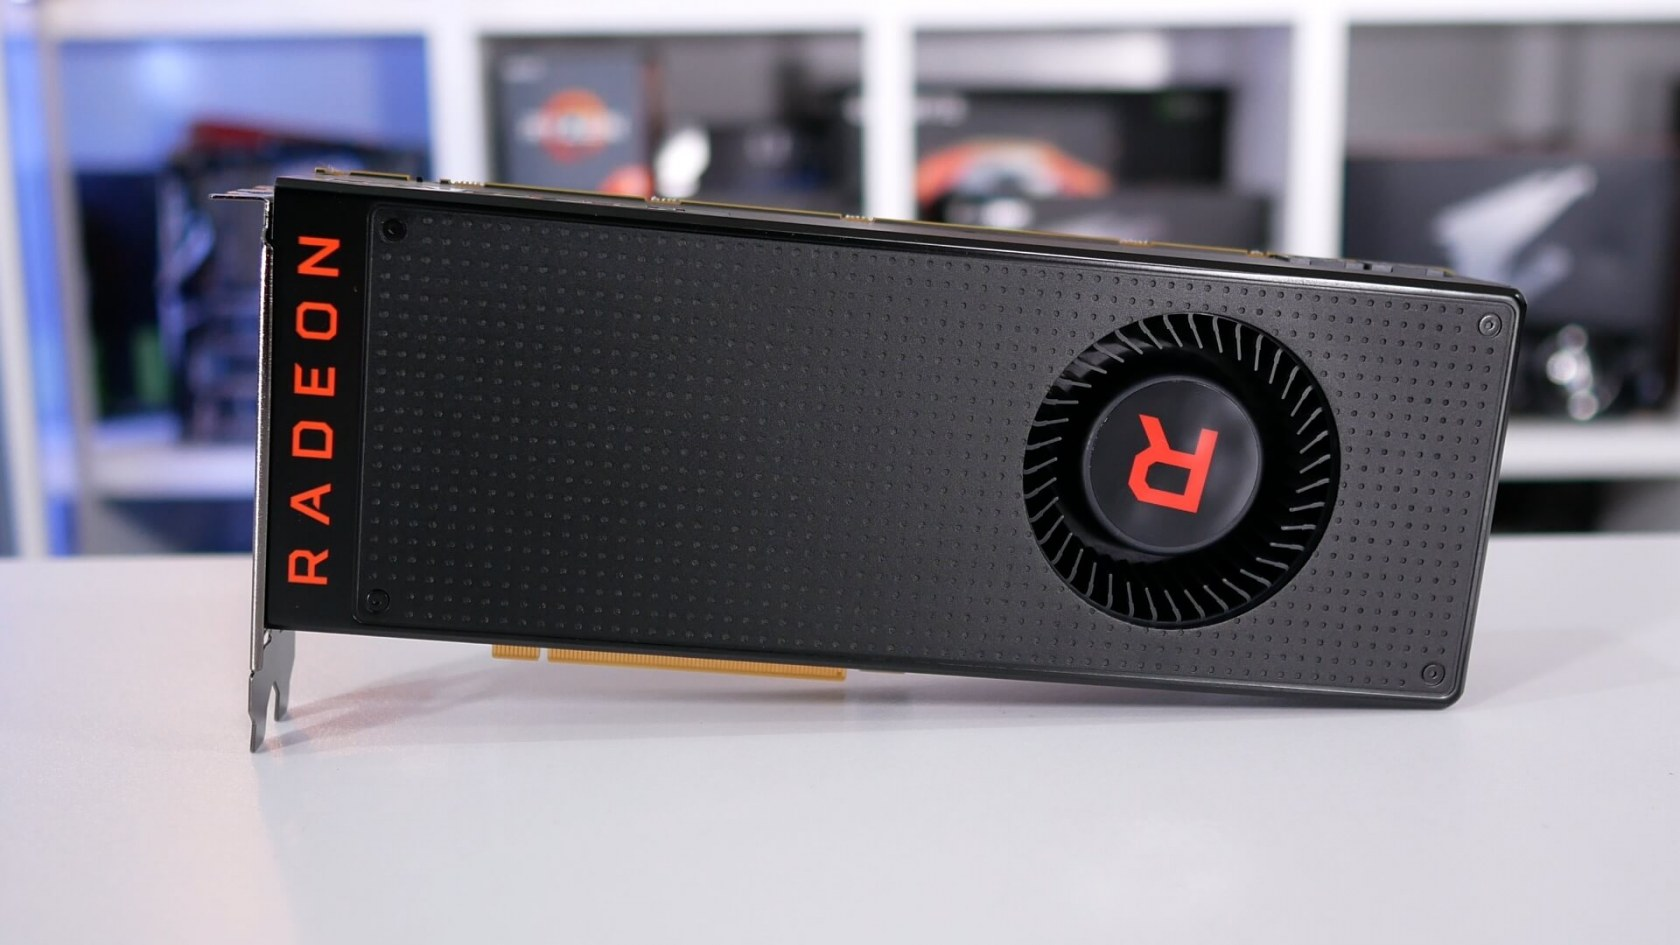 AMD is working on 'high-performing' GPUs, but it may be a while